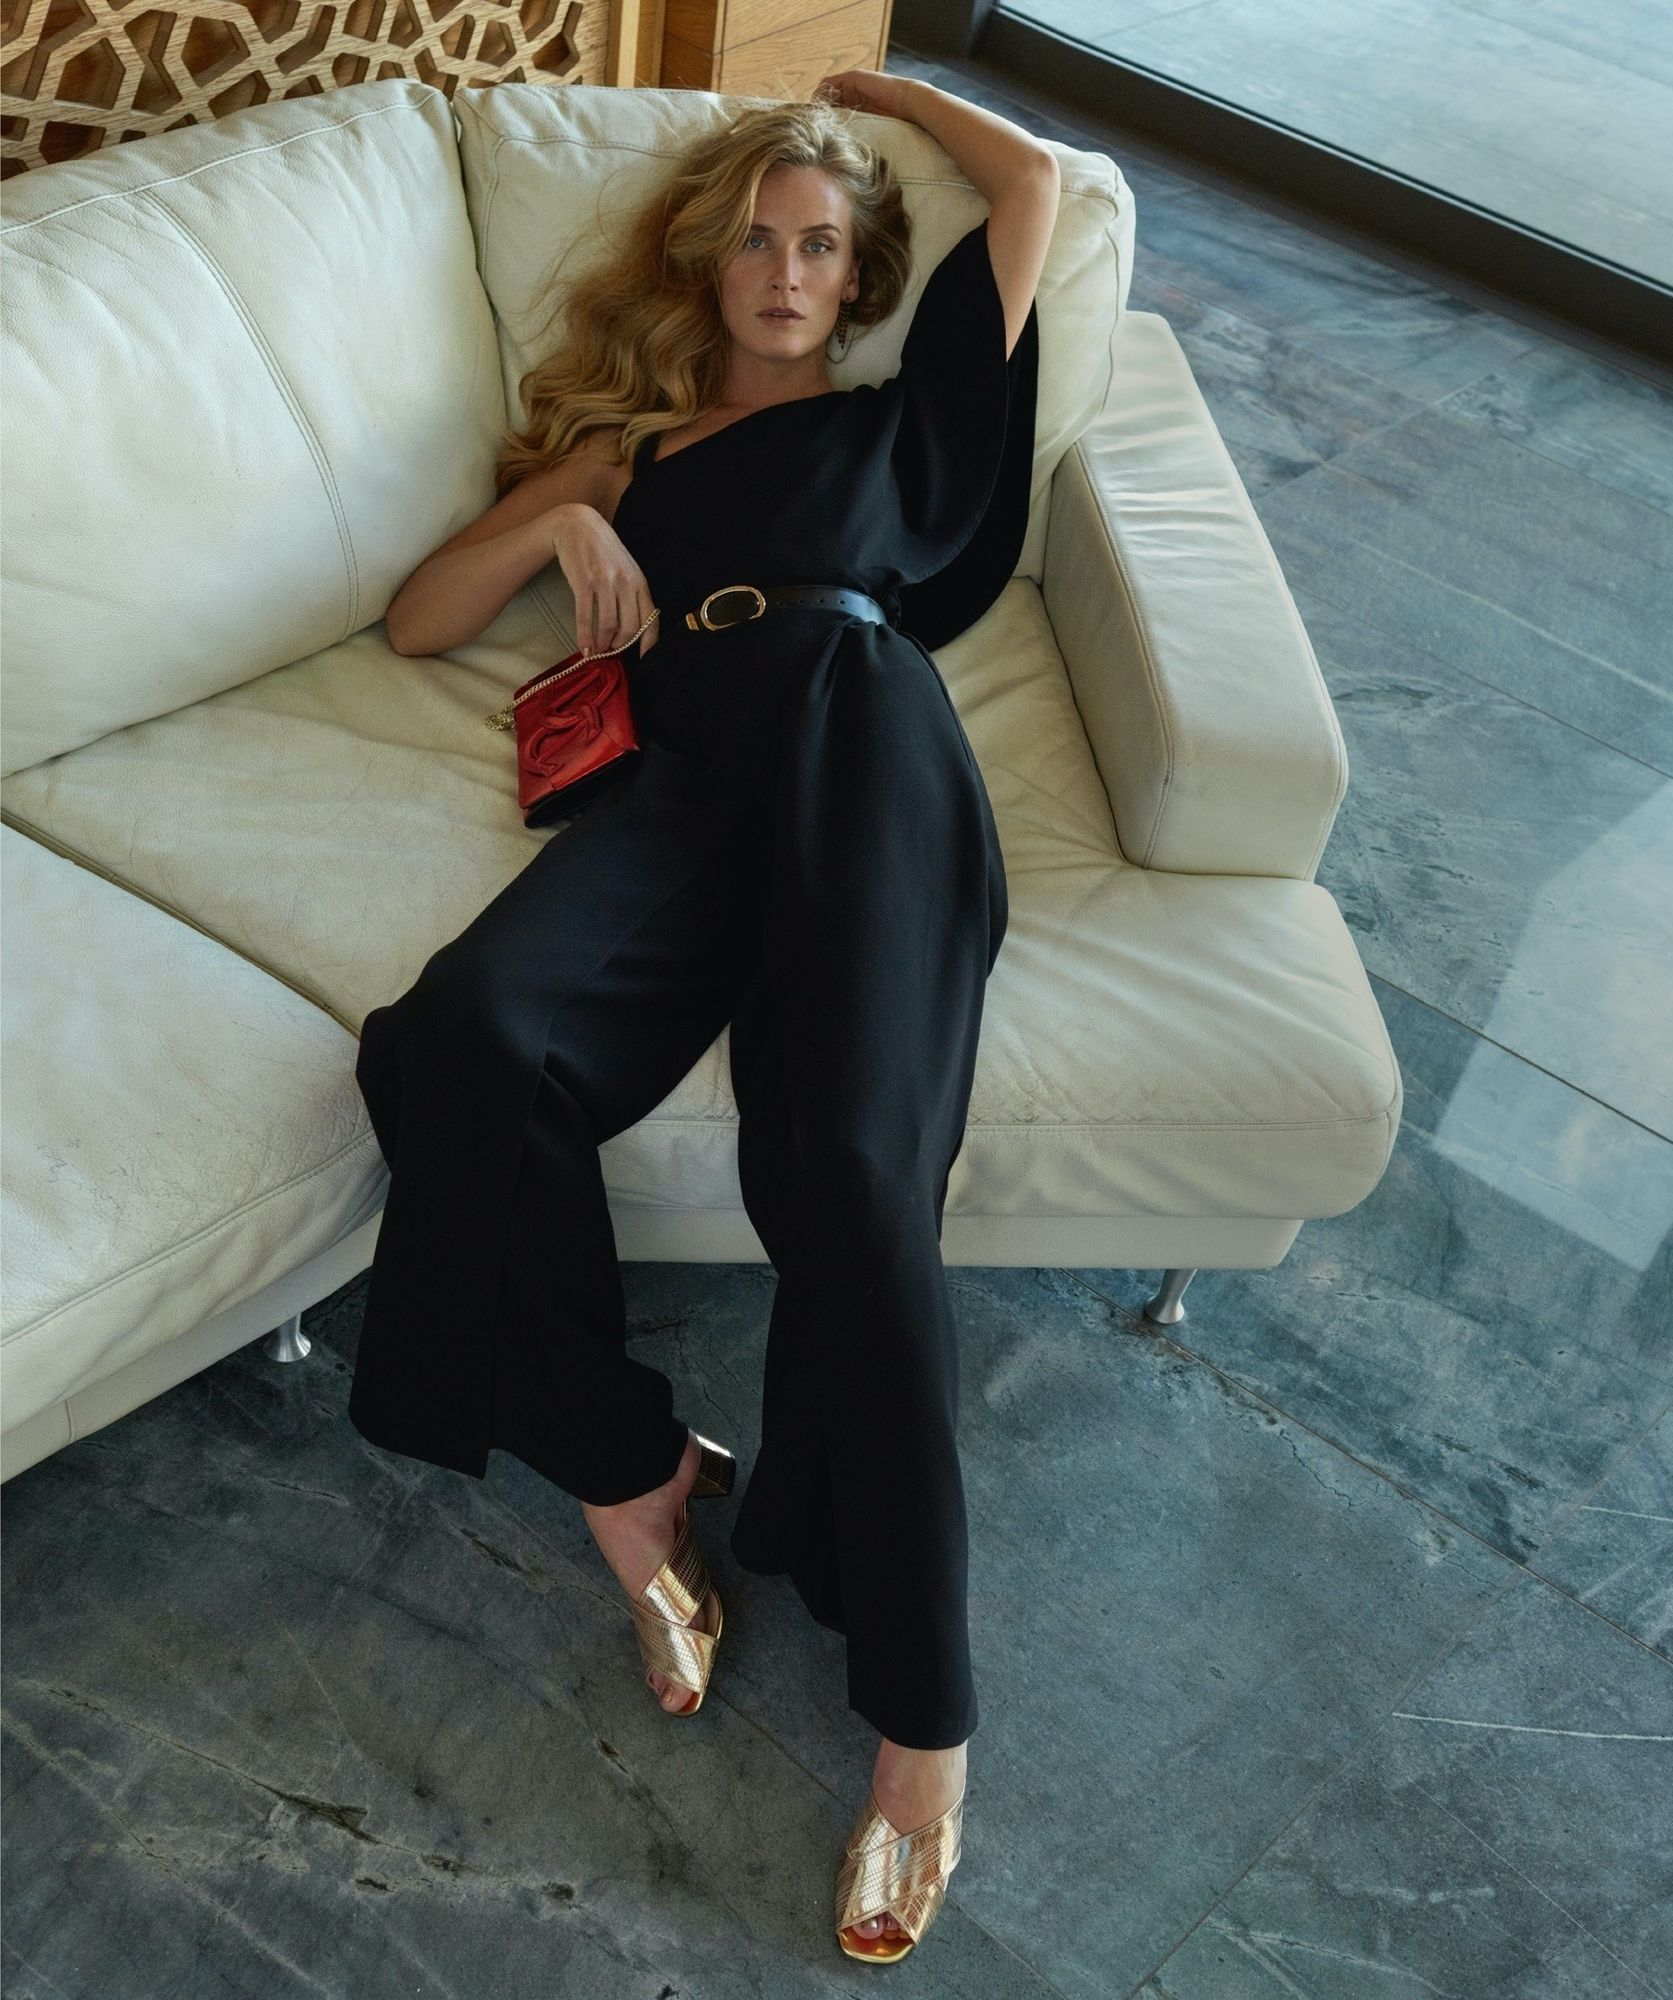 ASA TALLGARD for BARBARA with ALEKSANDRA ORBECK NILSSEN